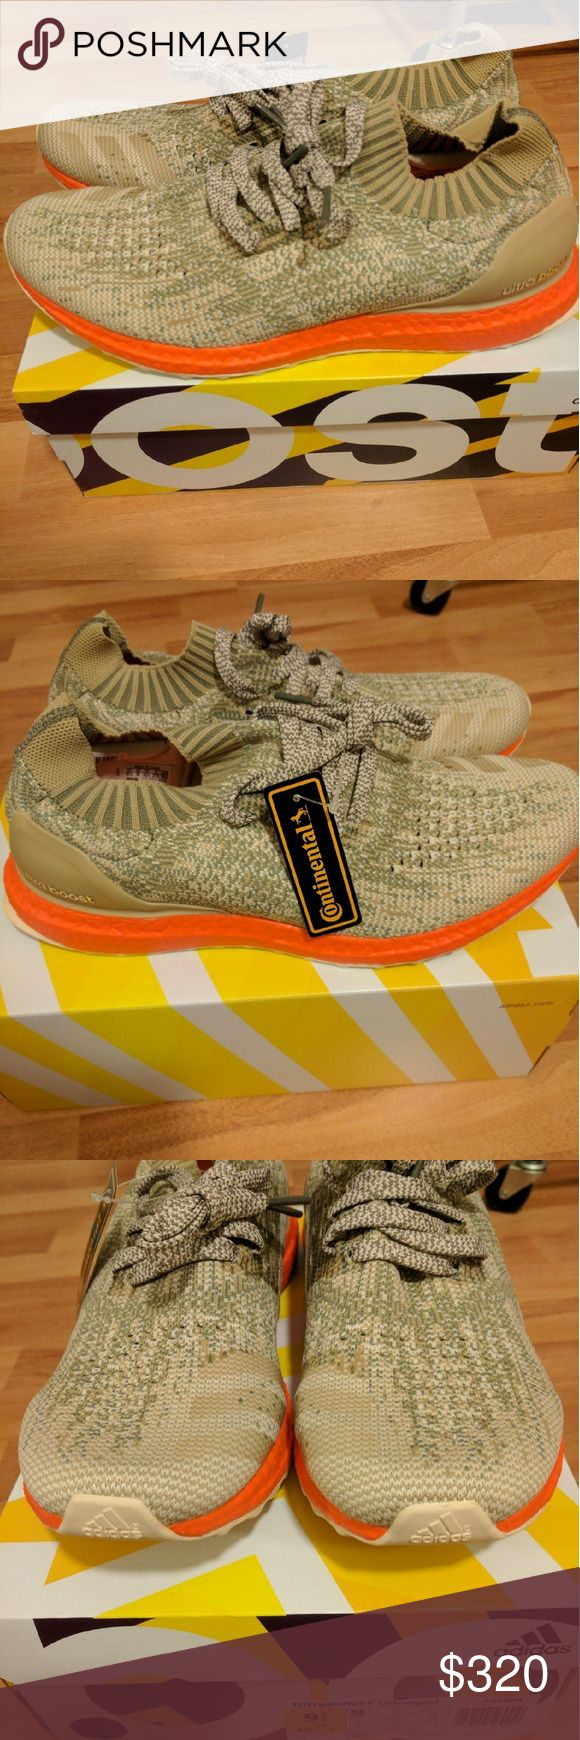 NEW MEN ADIDAS ULTRA BOOST UNCAGED TRACE CARGO Newest colorway for adidas men ultra boost uncaged, sold out everywhere!  Men Size 9.5  Deadstock.  100% authentic.  Will be shipped with original box and protection box.  No trades.  Price is firm.  No returns for incorrect size, size is as described in description  Check out my account for more shoes and sizes!  Tags:Adidas, Jordan, Nike, retro, boost, Yeezy, ultra boost, prime knit, supreme, make up, contacts Adidas Shoes